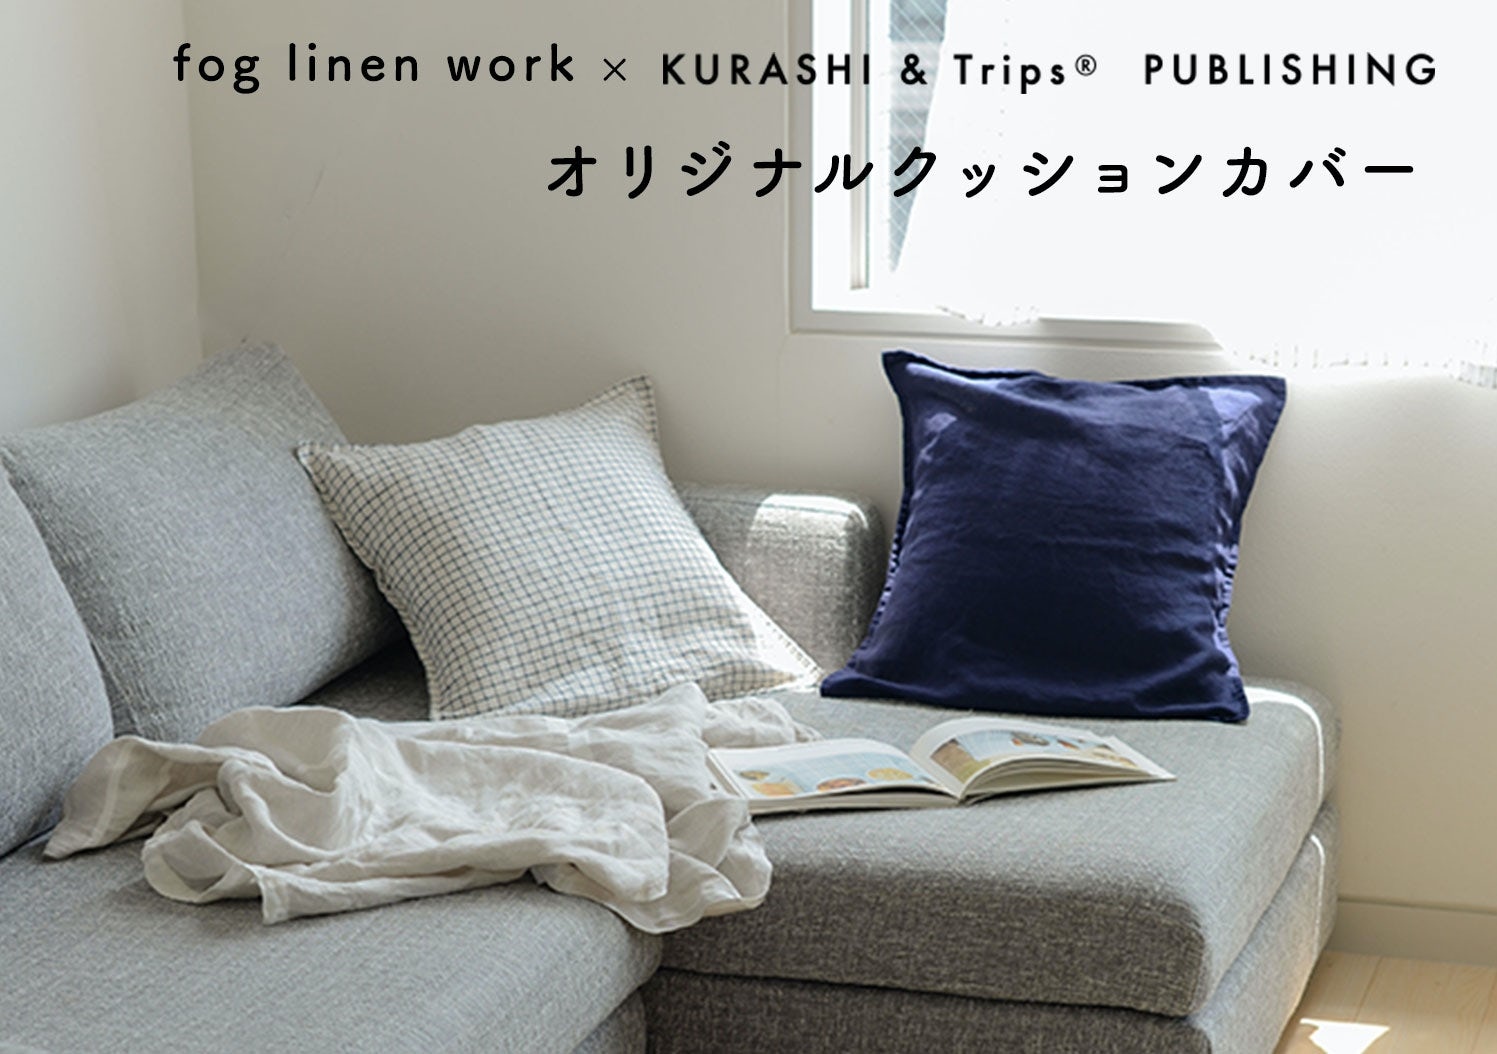 fog linen work × KURASHI&Trips PUBLISHING / クッションカバーの画像